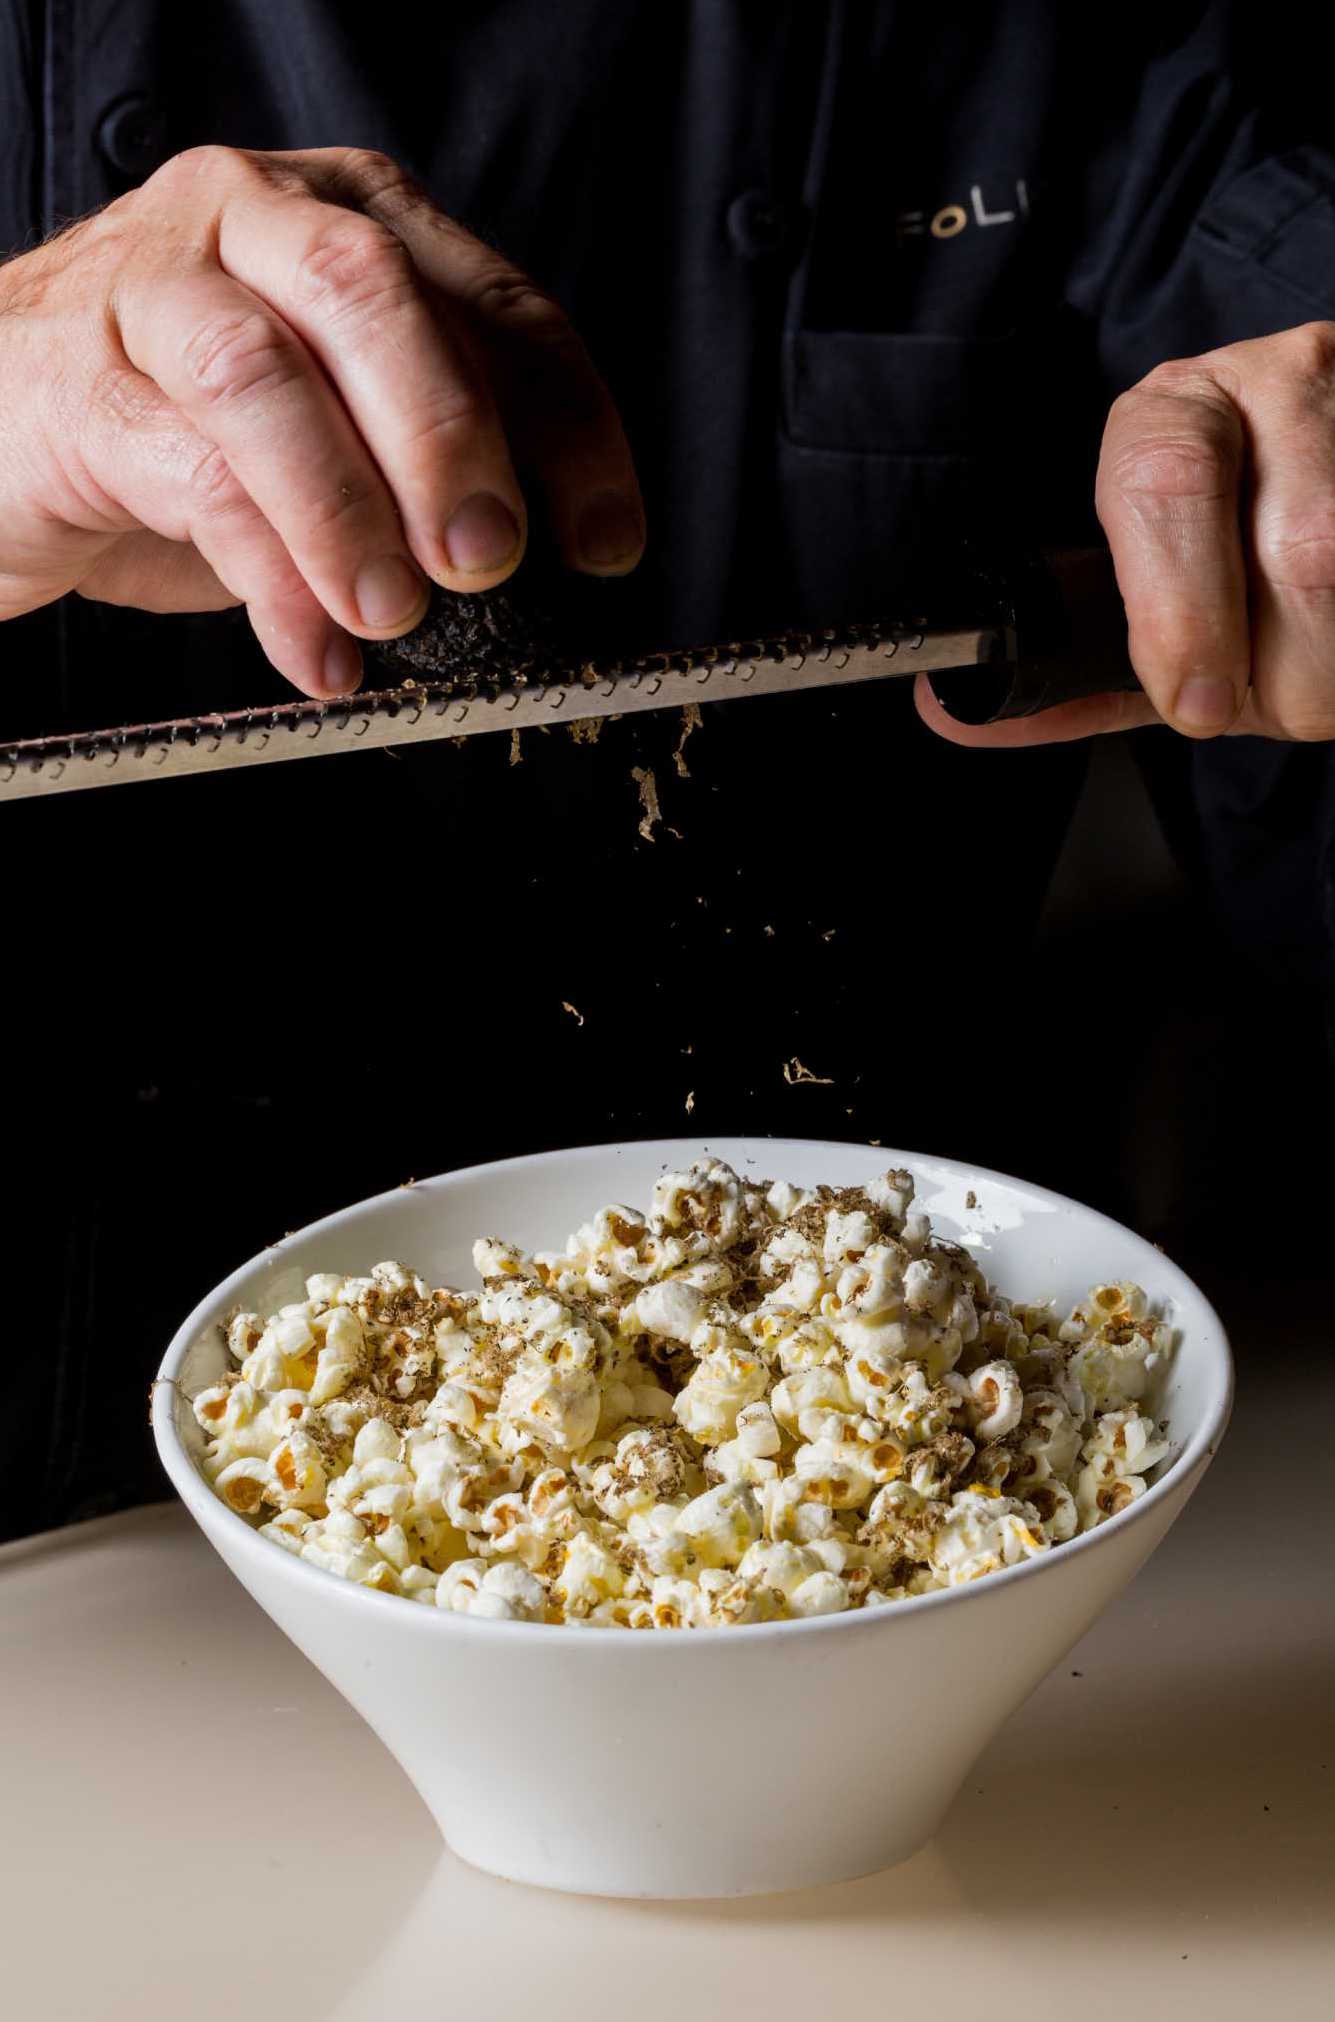 Truffled popcorn at La Folie Lounge